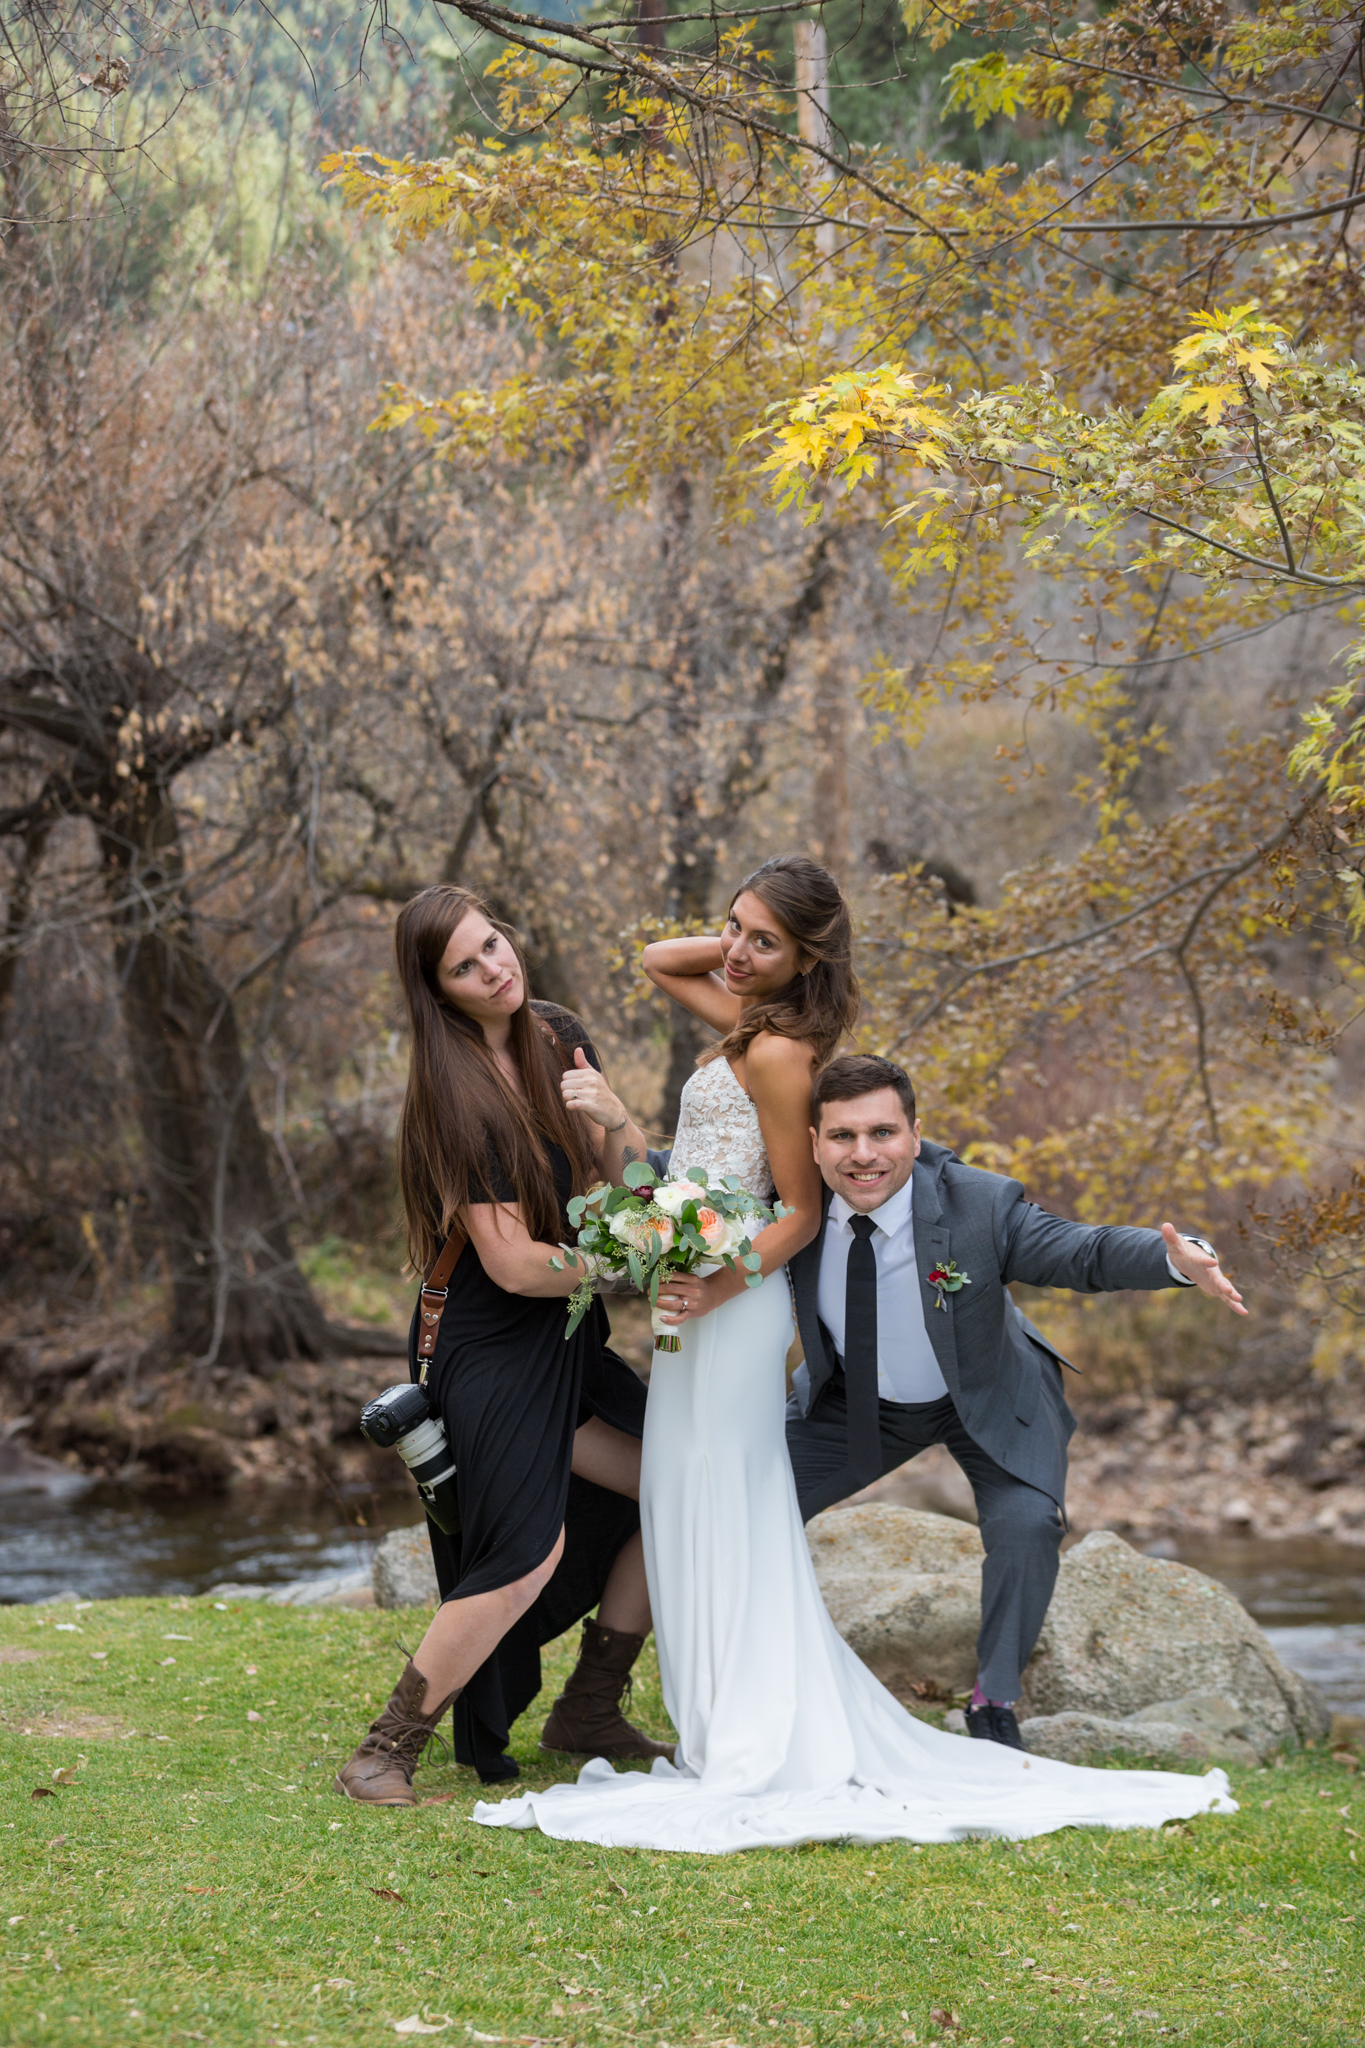 bouldercreekweddingphotos-108.jpg